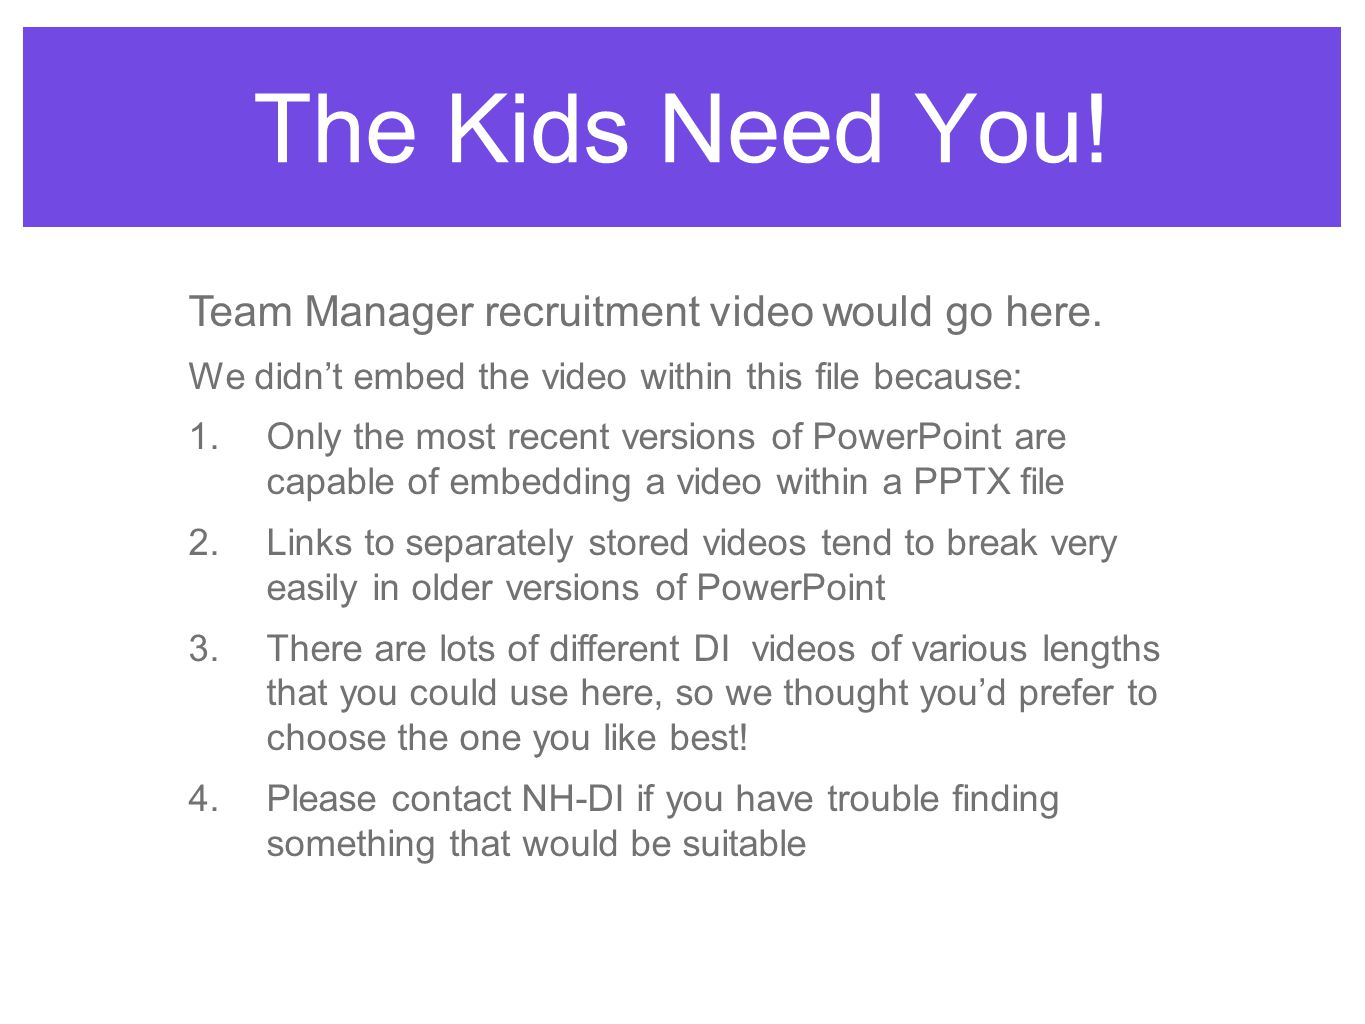 The Kids Need You. Team Manager recruitment video would go here.